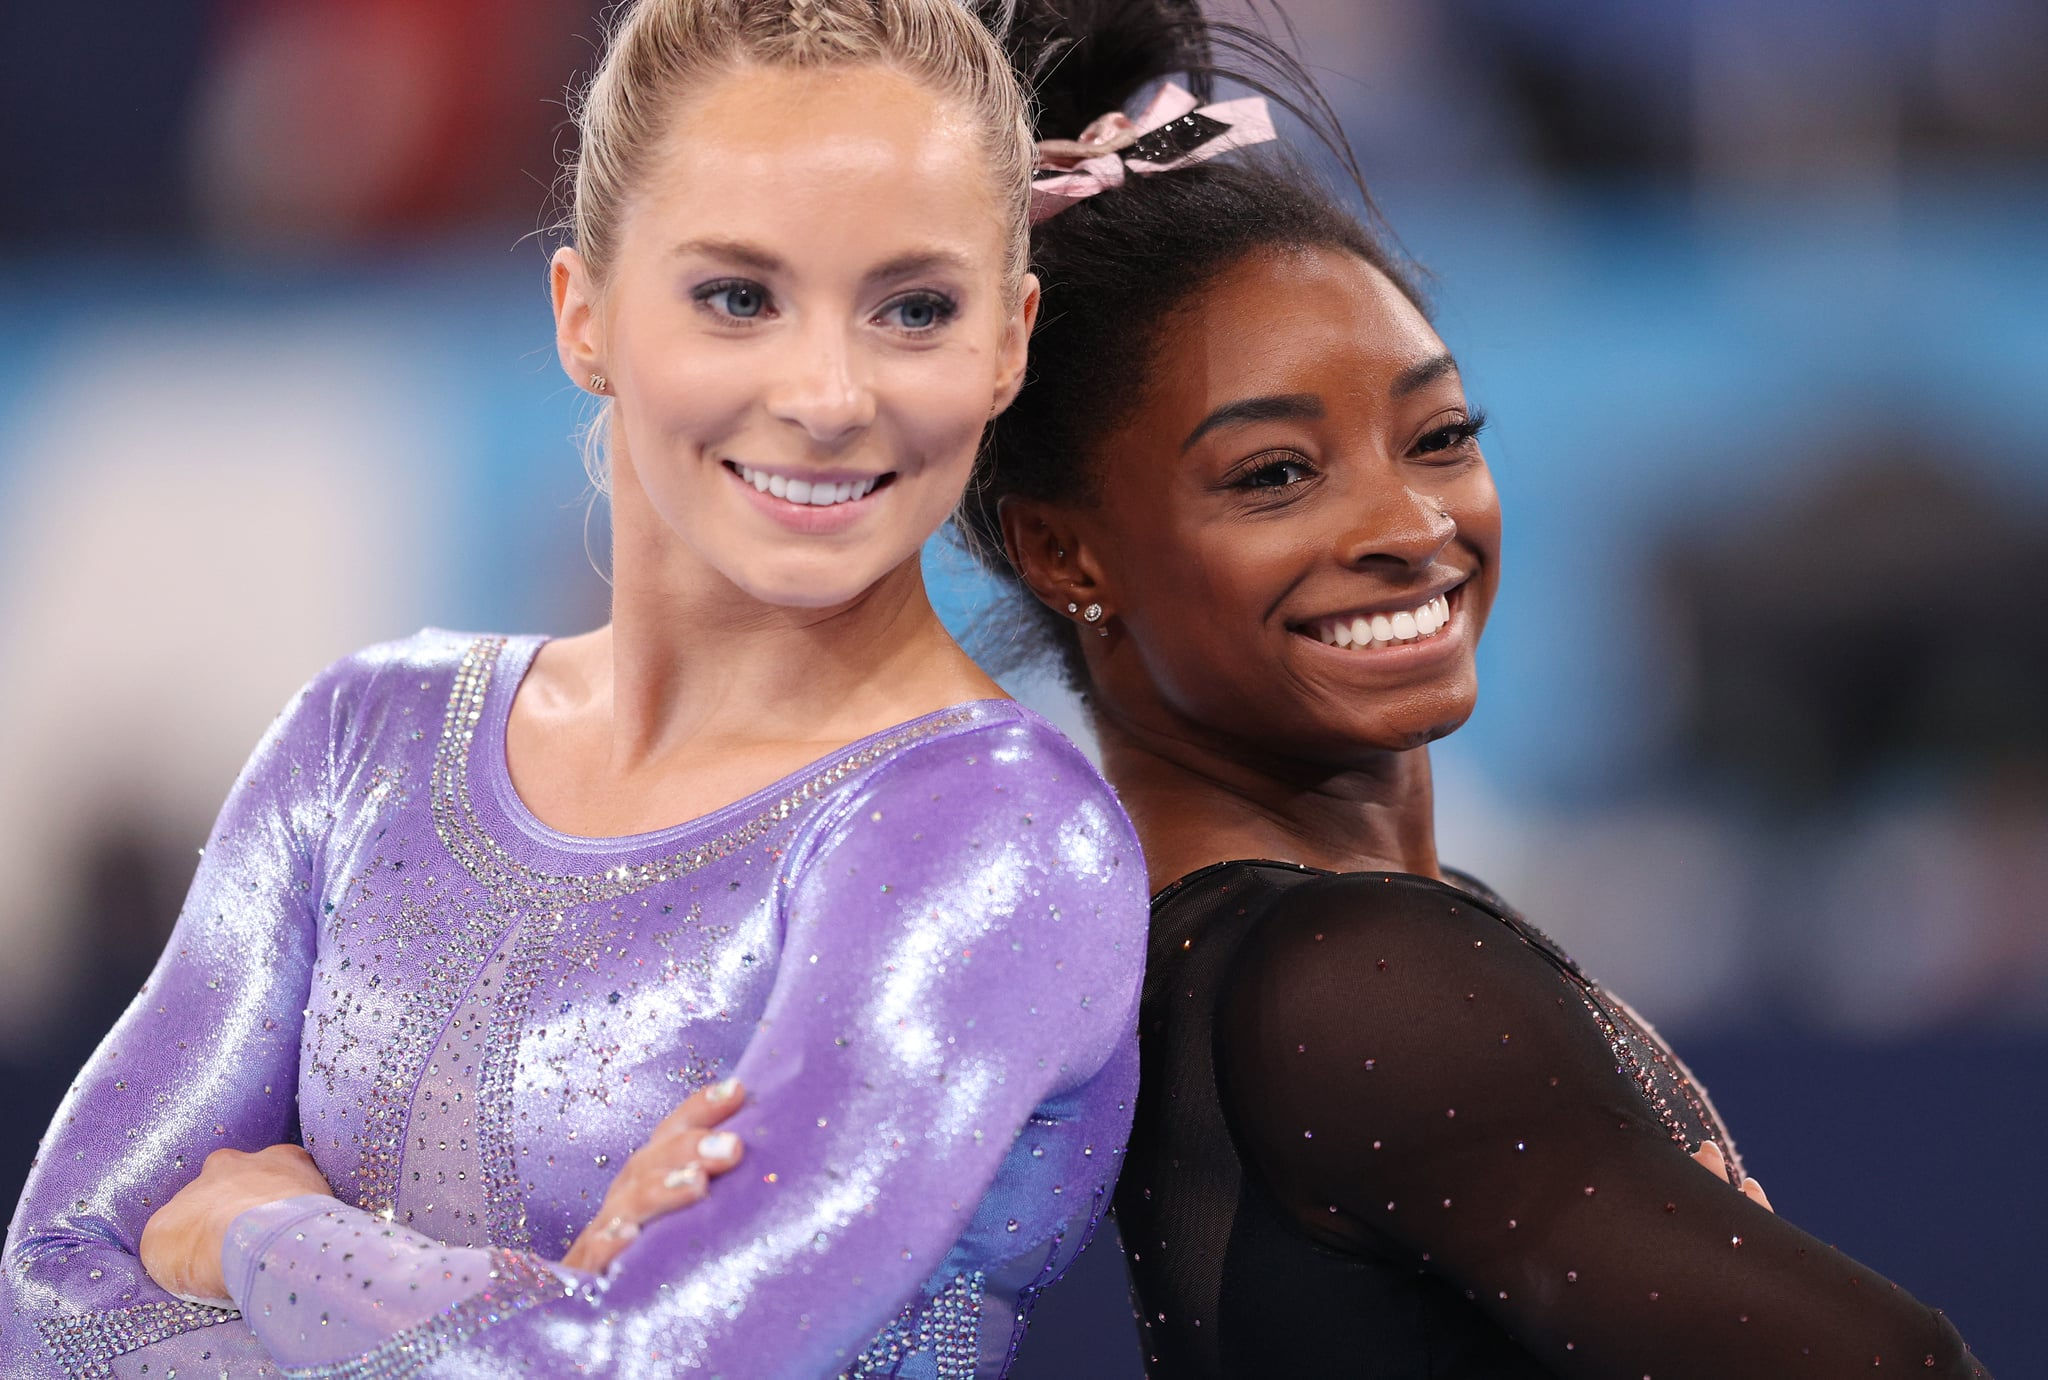 TOKYO, JAPAN - JULY 22: Mykayla Skinner and Simone Biles of Team United States pose for a photo during Women's Podium Training ahead of the Tokyo 2020 Olympic Games at Ariake Gymnastics Centre on July 22, 2021 in Tokyo, Japan. (Photo by Patrick Smith/Getty Images)